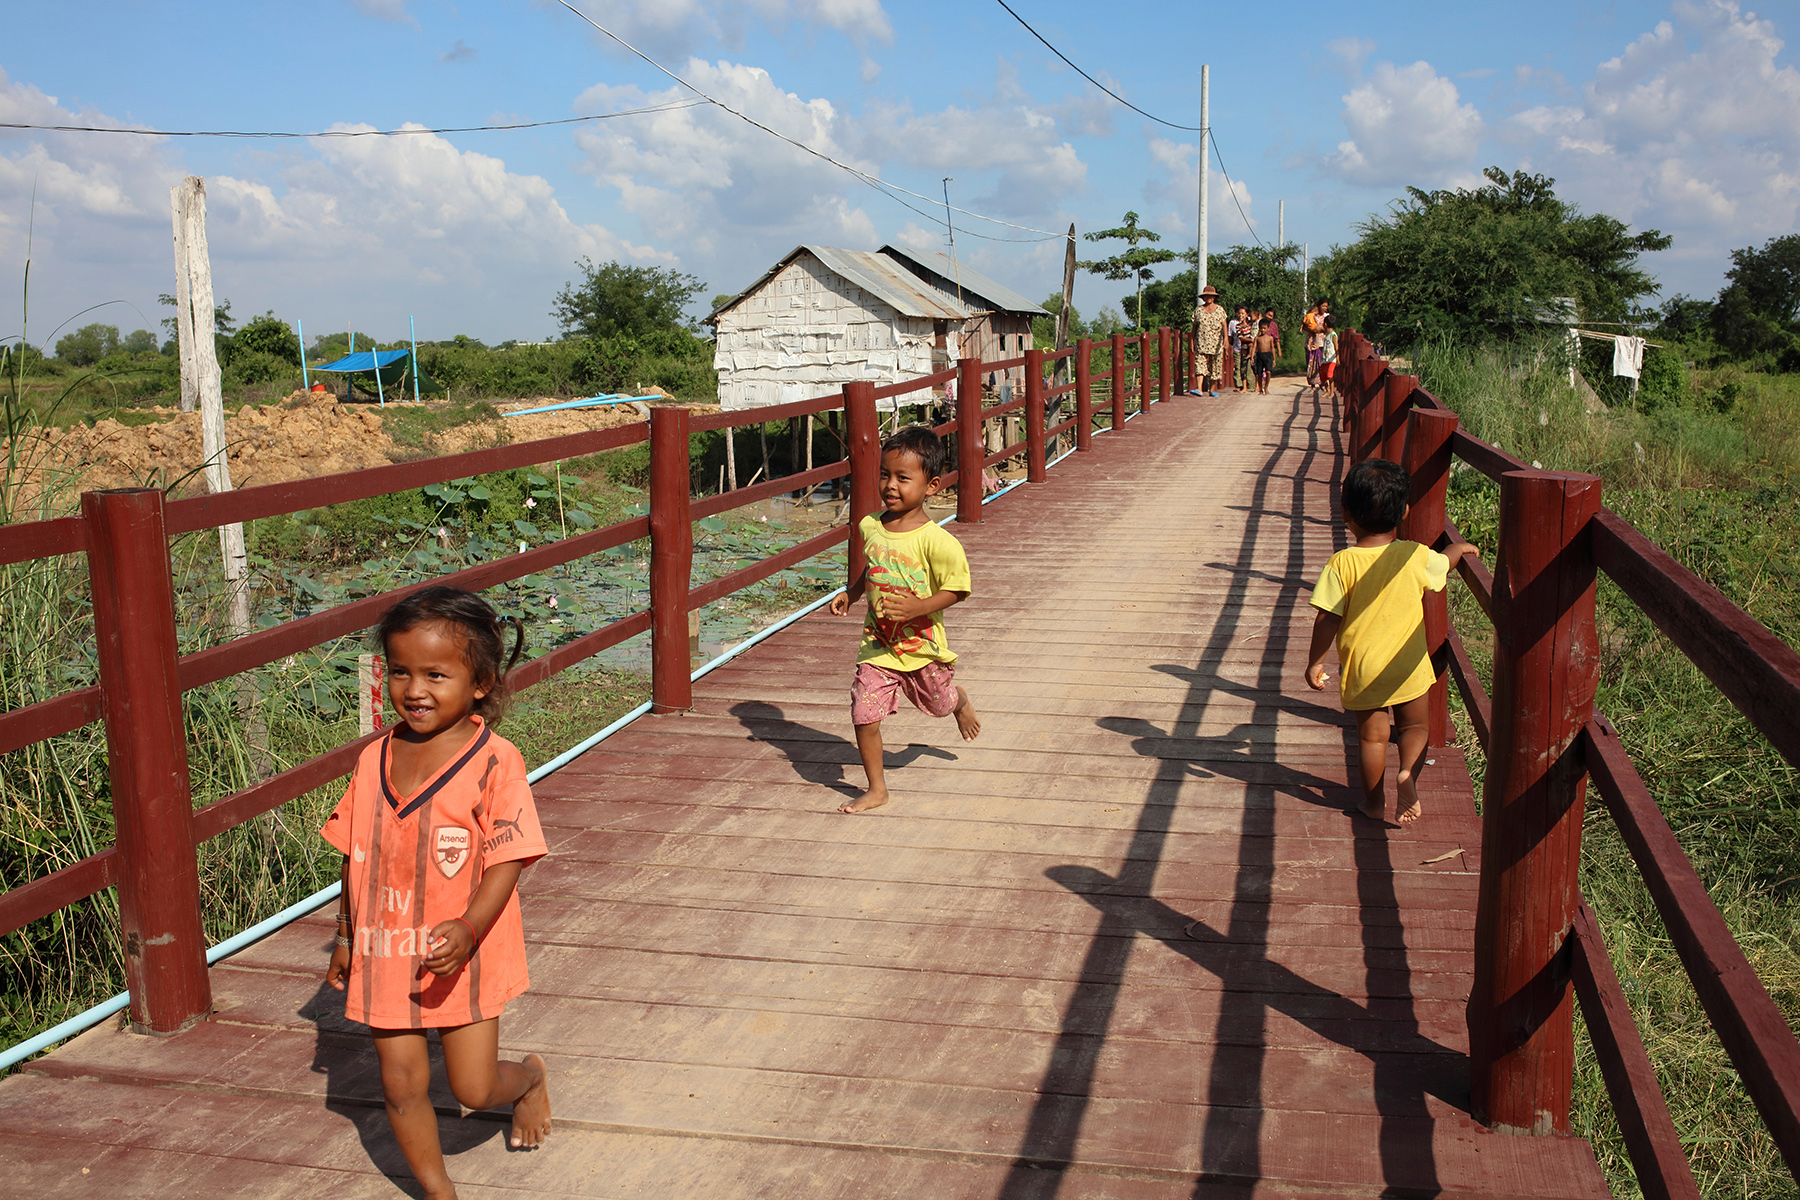 Children run across the bridge at Kom Nor Thmor village. The bridge was provided by Sunrise at a cost of $30,000; before it was built, during the rainy season children could not get to school. Photo: Tony Lewis